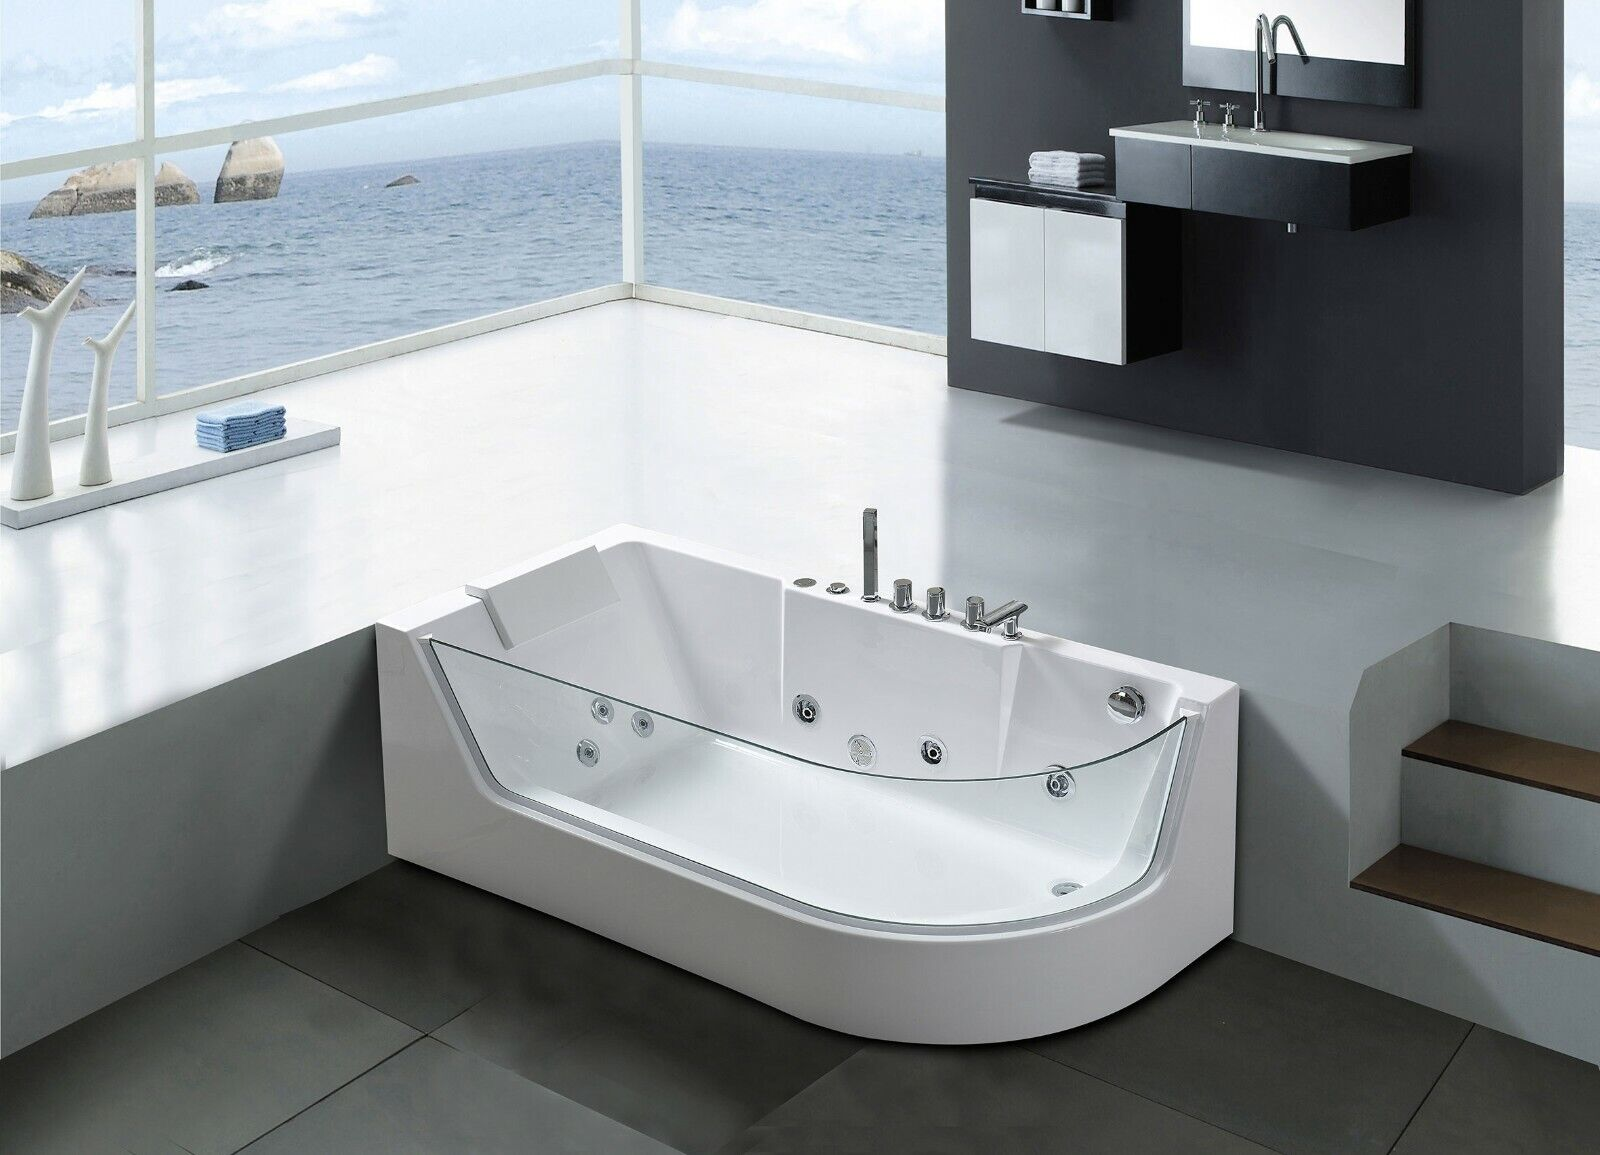 Simba Usa Whirlpool Massage Hydrotherapy White Corner Bathtub Hot Tub 2 Two Person 59 05 For Sale Online Ebay